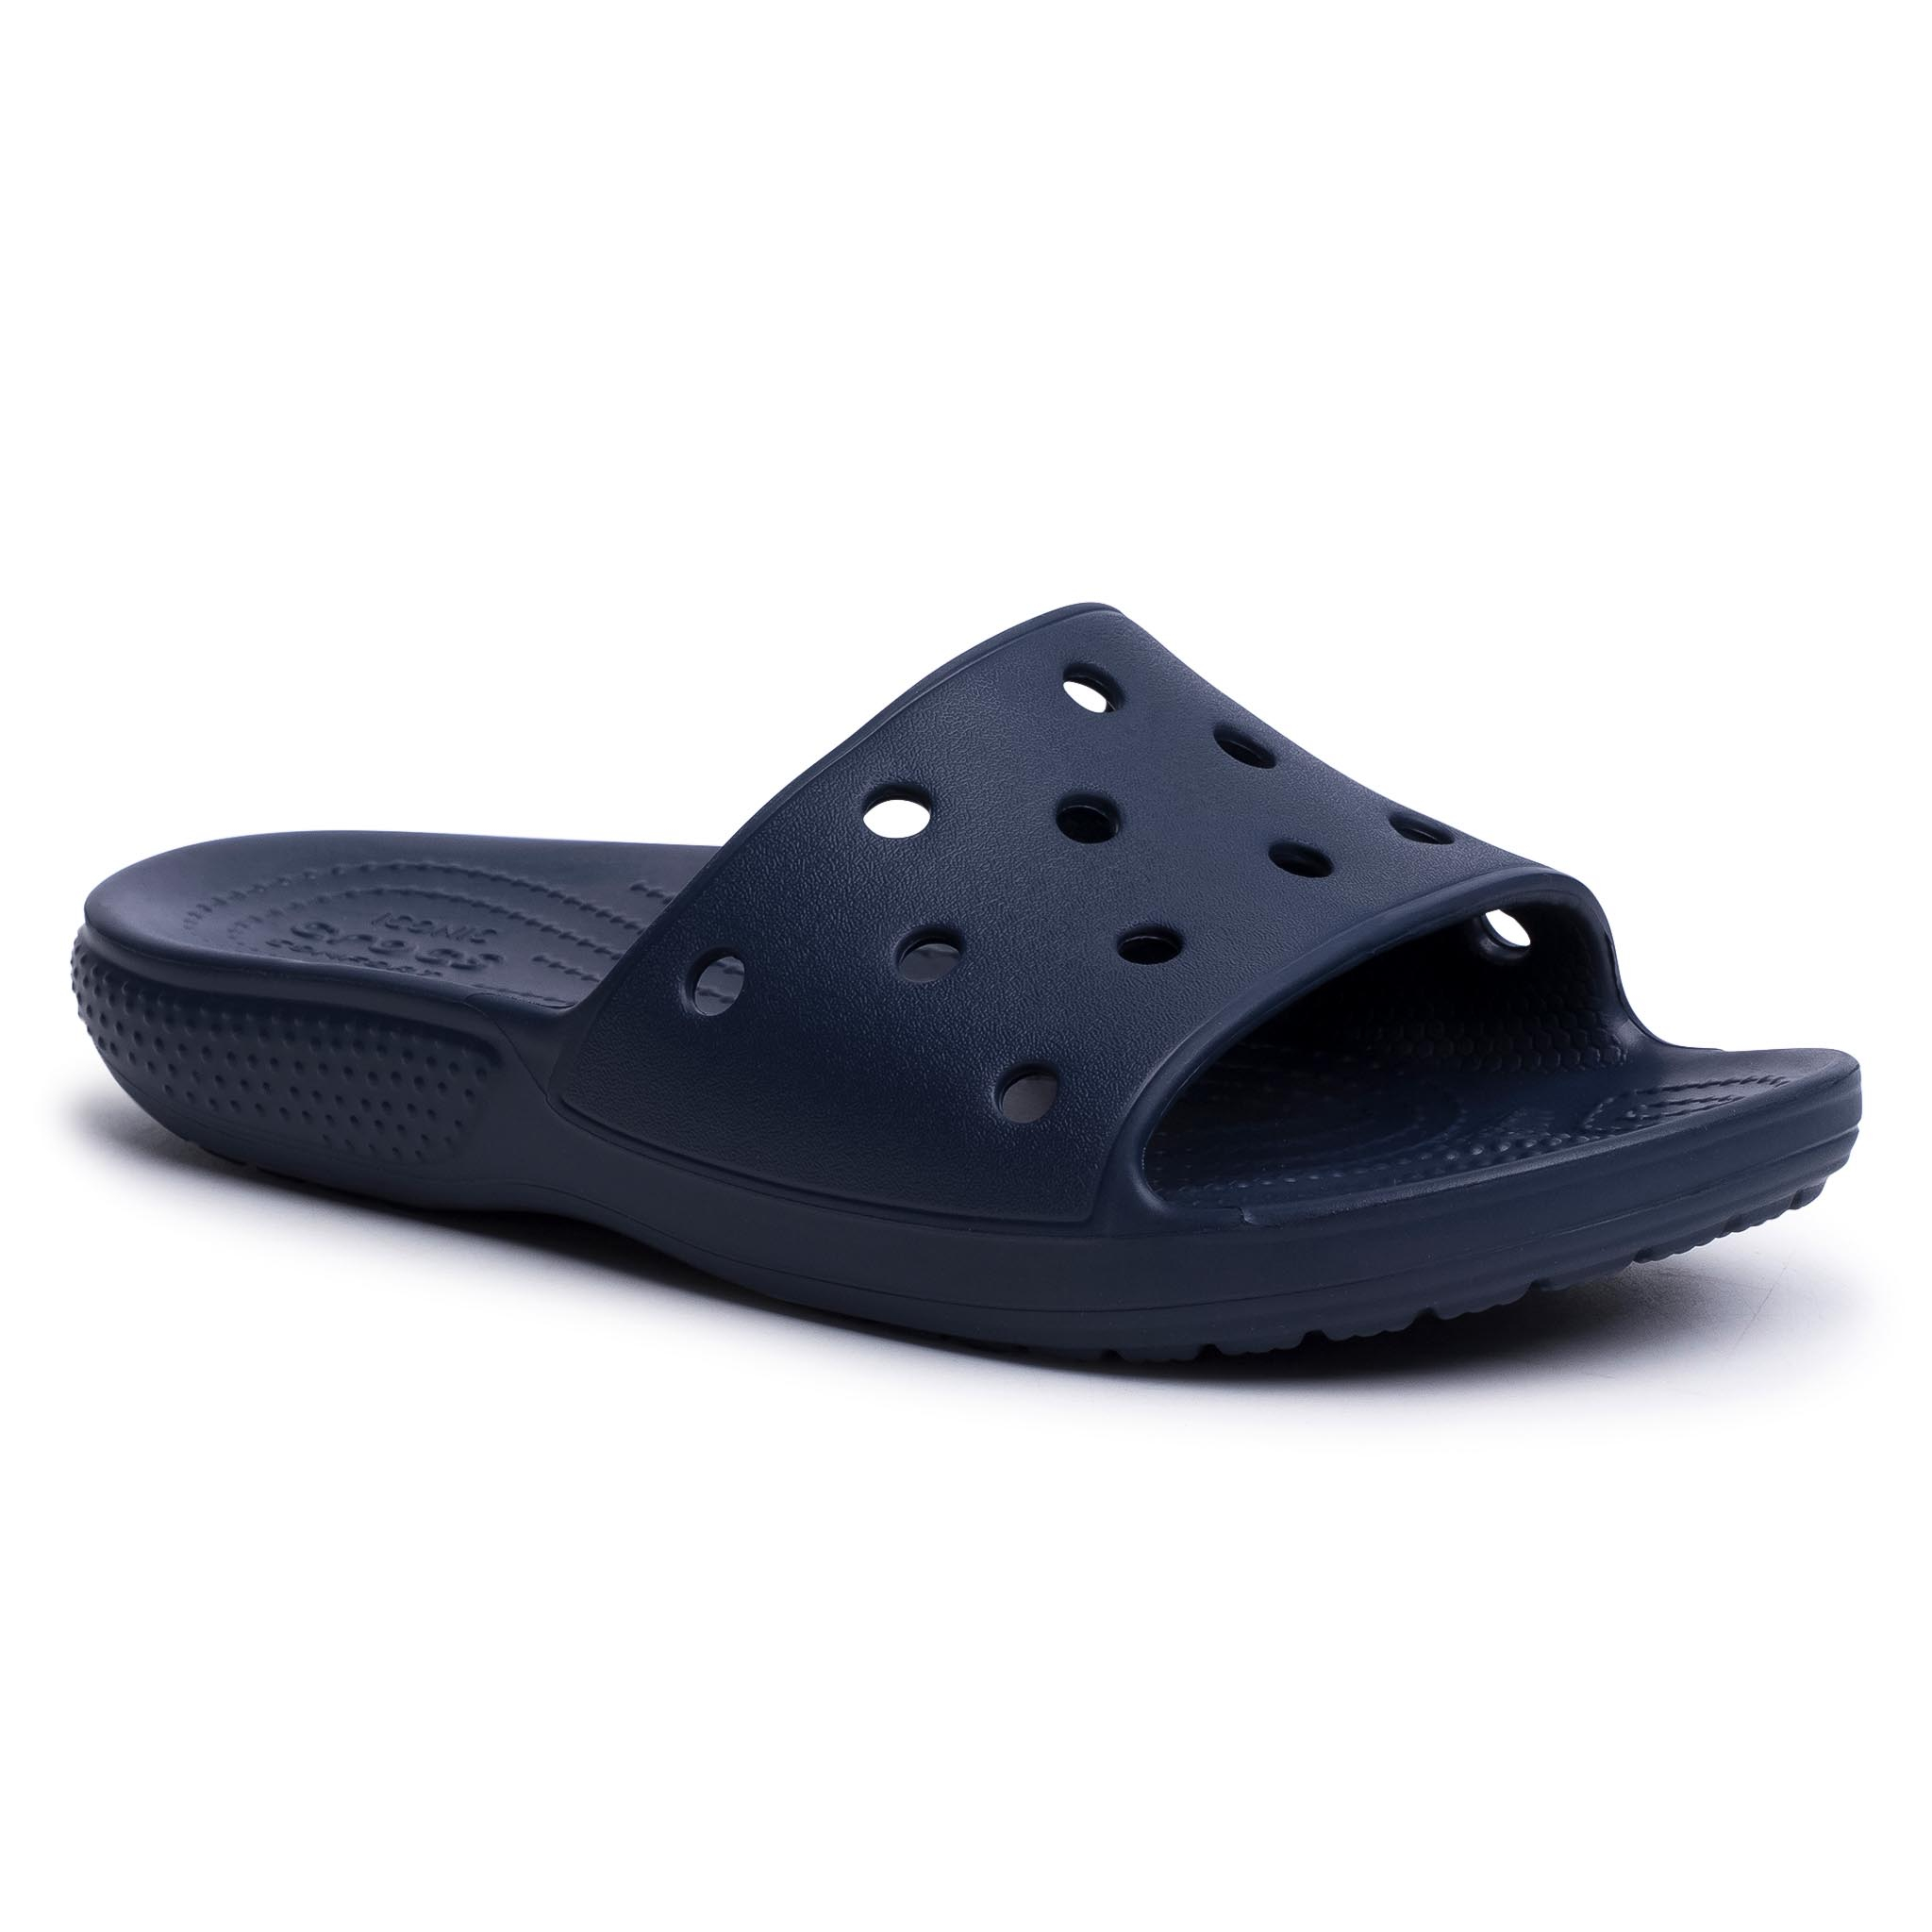 Șlapi Crocs - Classic Slide 206121 Navy imagine epantofi.ro 2021